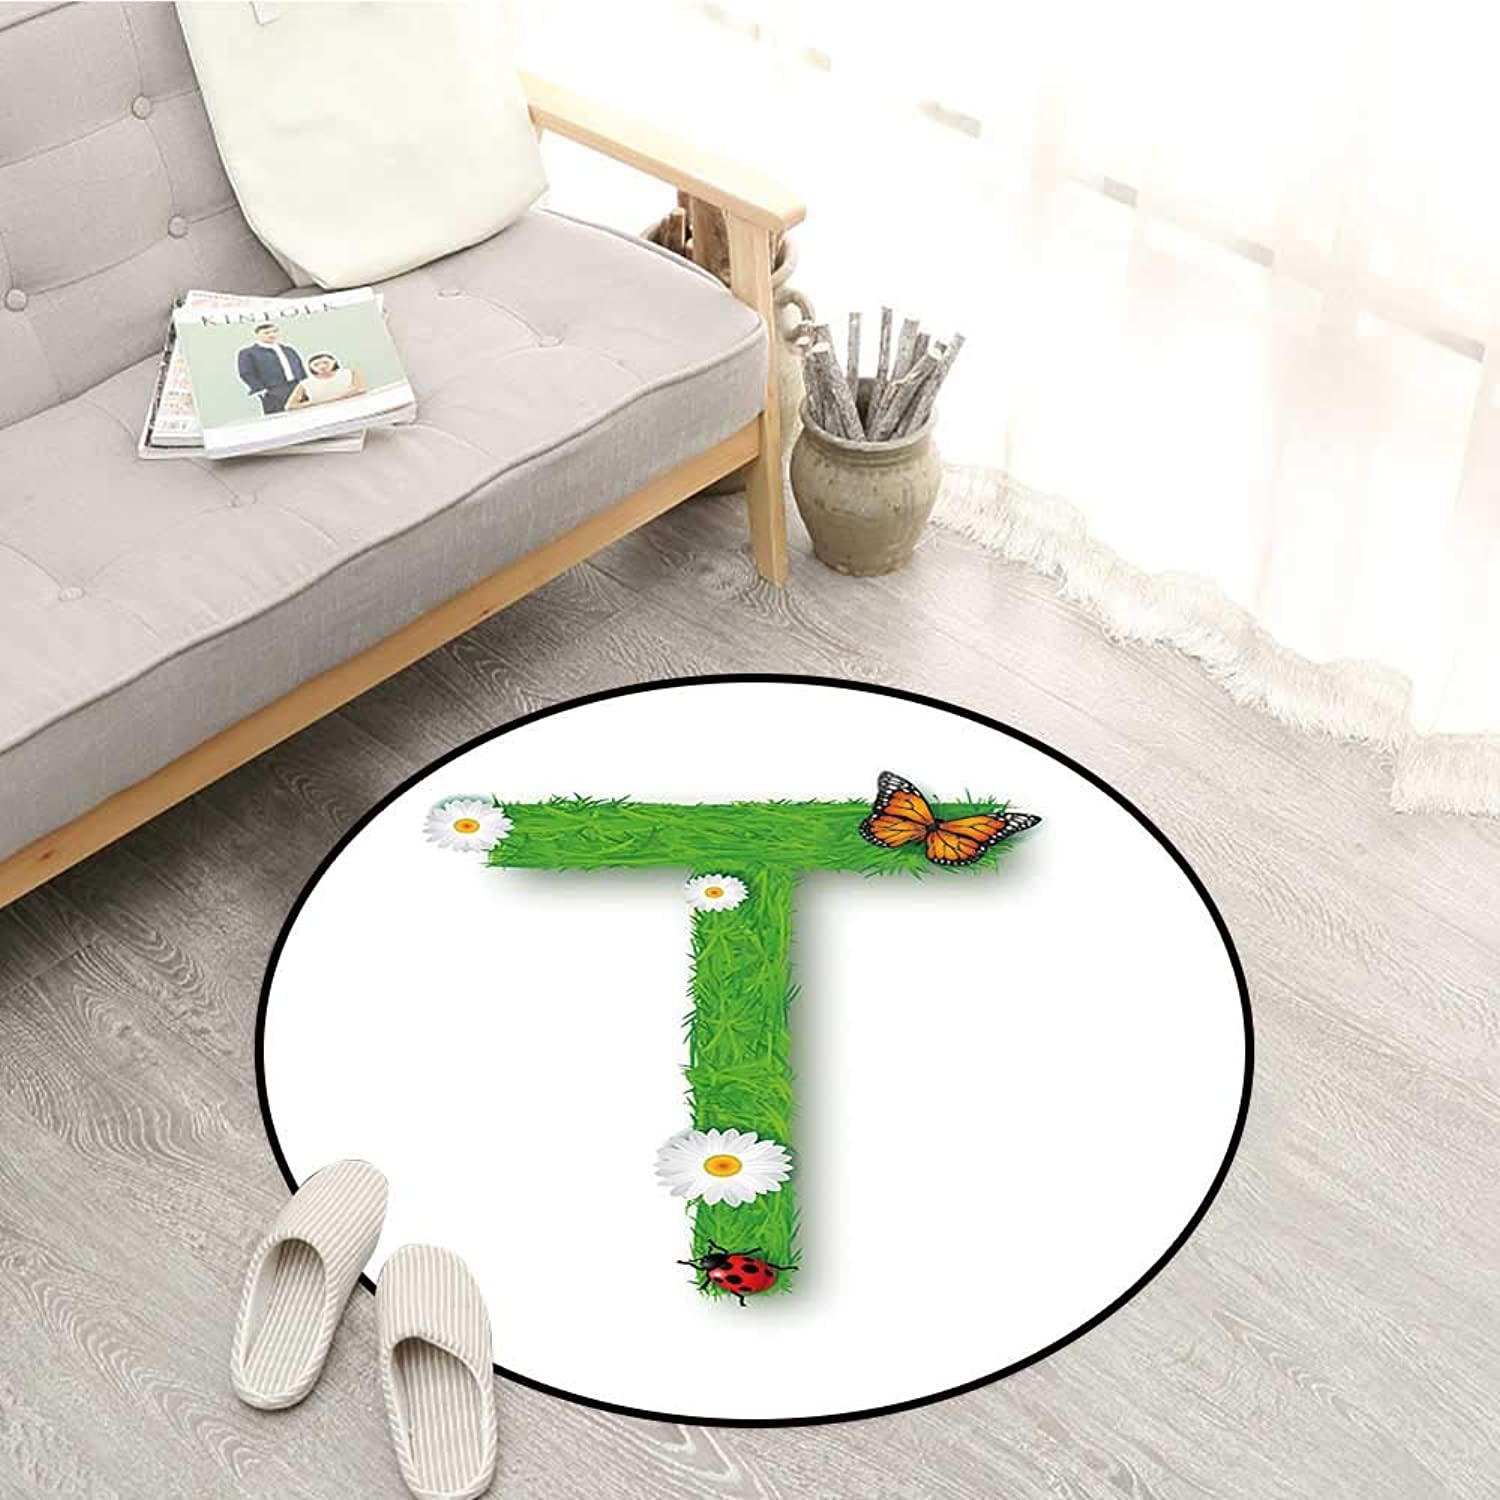 Letter T Carpets Caps T with Flourishing Fragrance Botanical Design and Ladybug Girls Room Sofa Coffee Table Mat 4'11  Green Multicolor